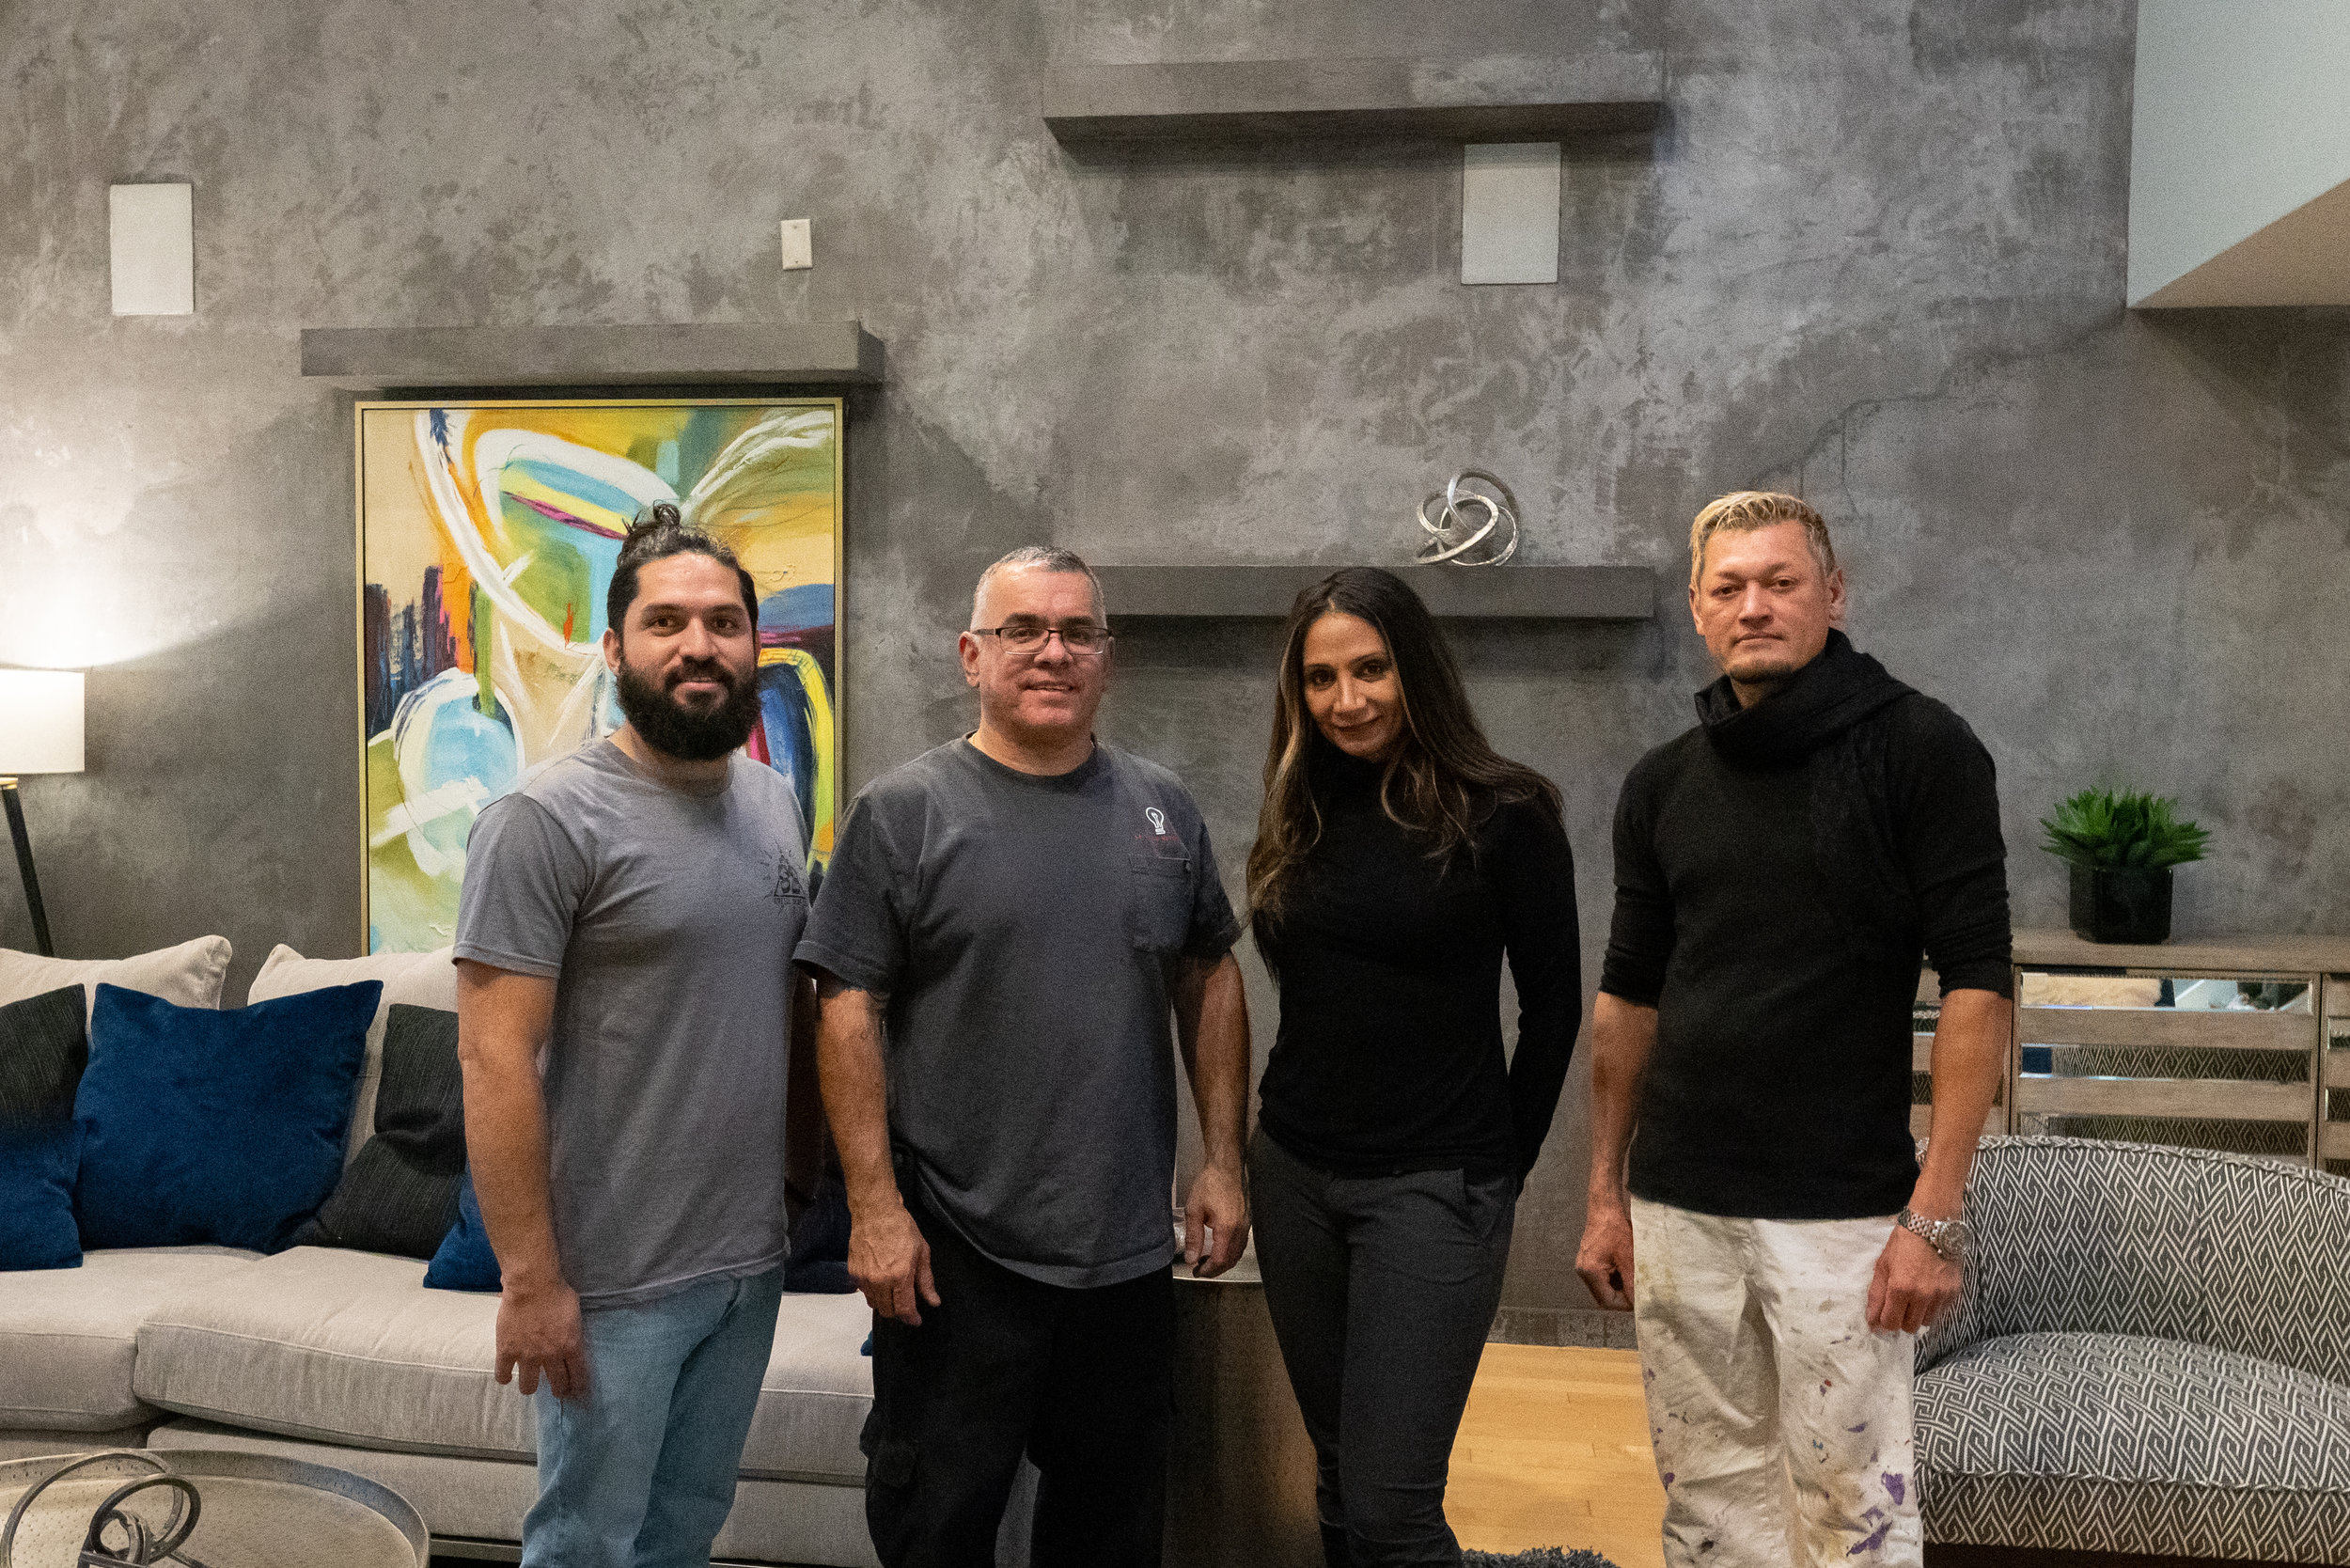 Our Team - From the initial consultation to installation of our products and designs, our team is dedicated to professionalism and customer service.